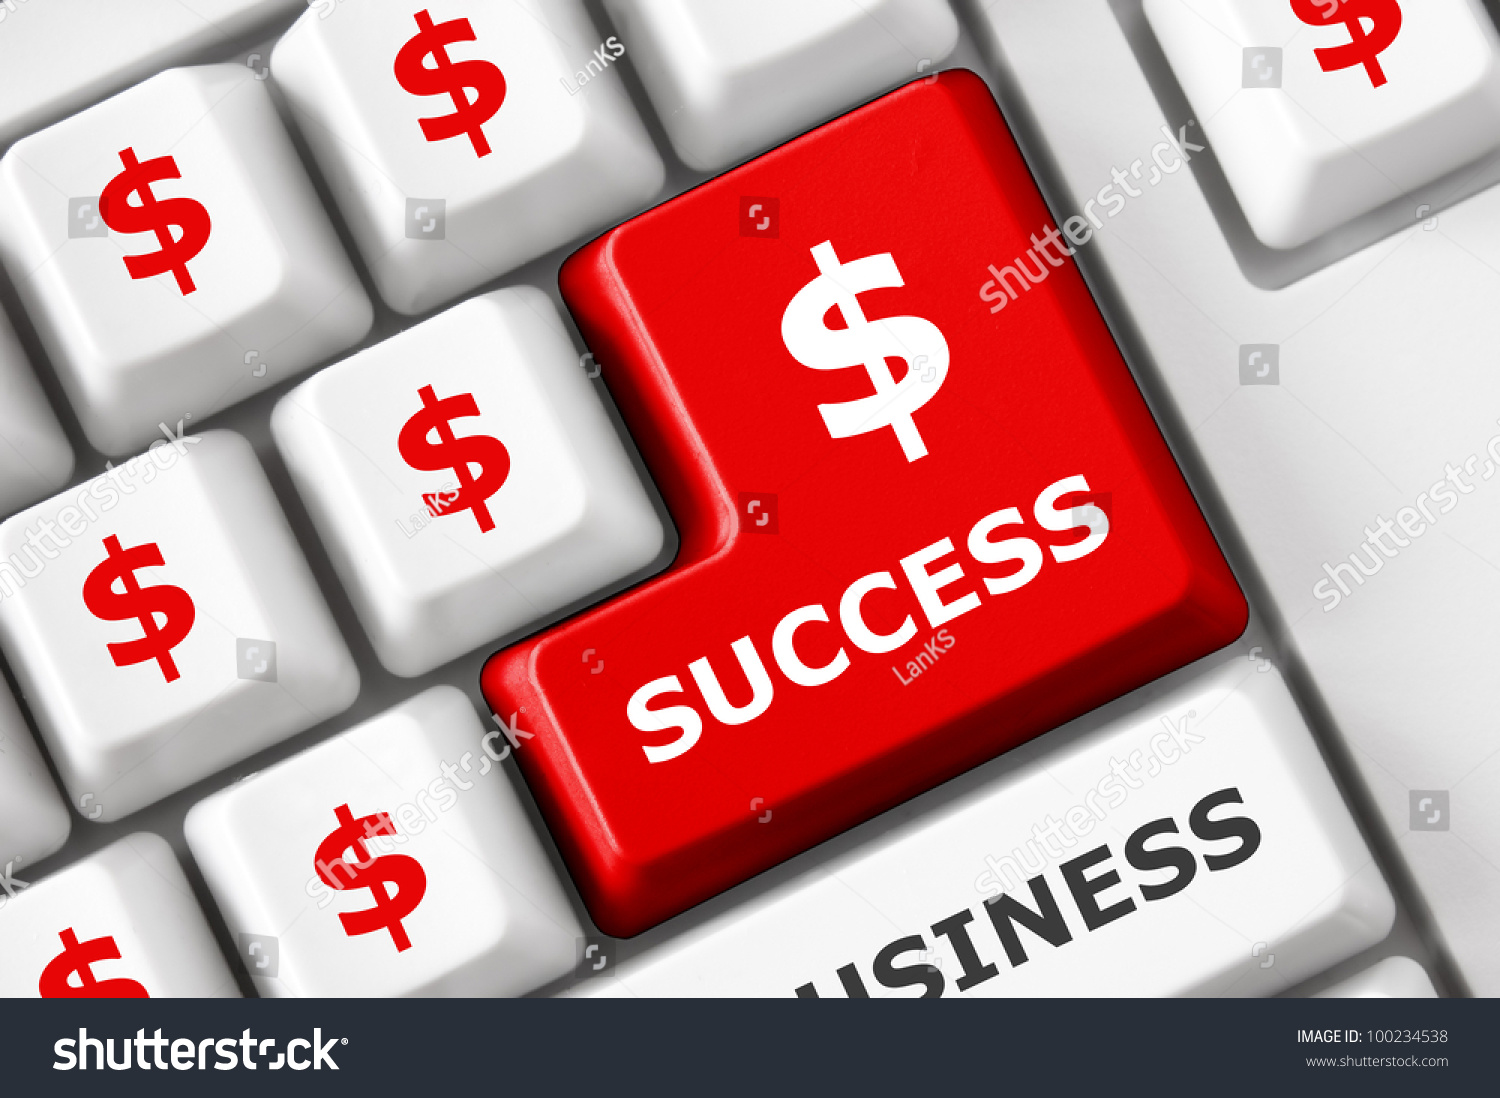 Nazi symbol on keyboard image collections symbols and meanings peace symbol text keyboard image collections symbols and meanings success text dollar symbols on modern stock biocorpaavc Images